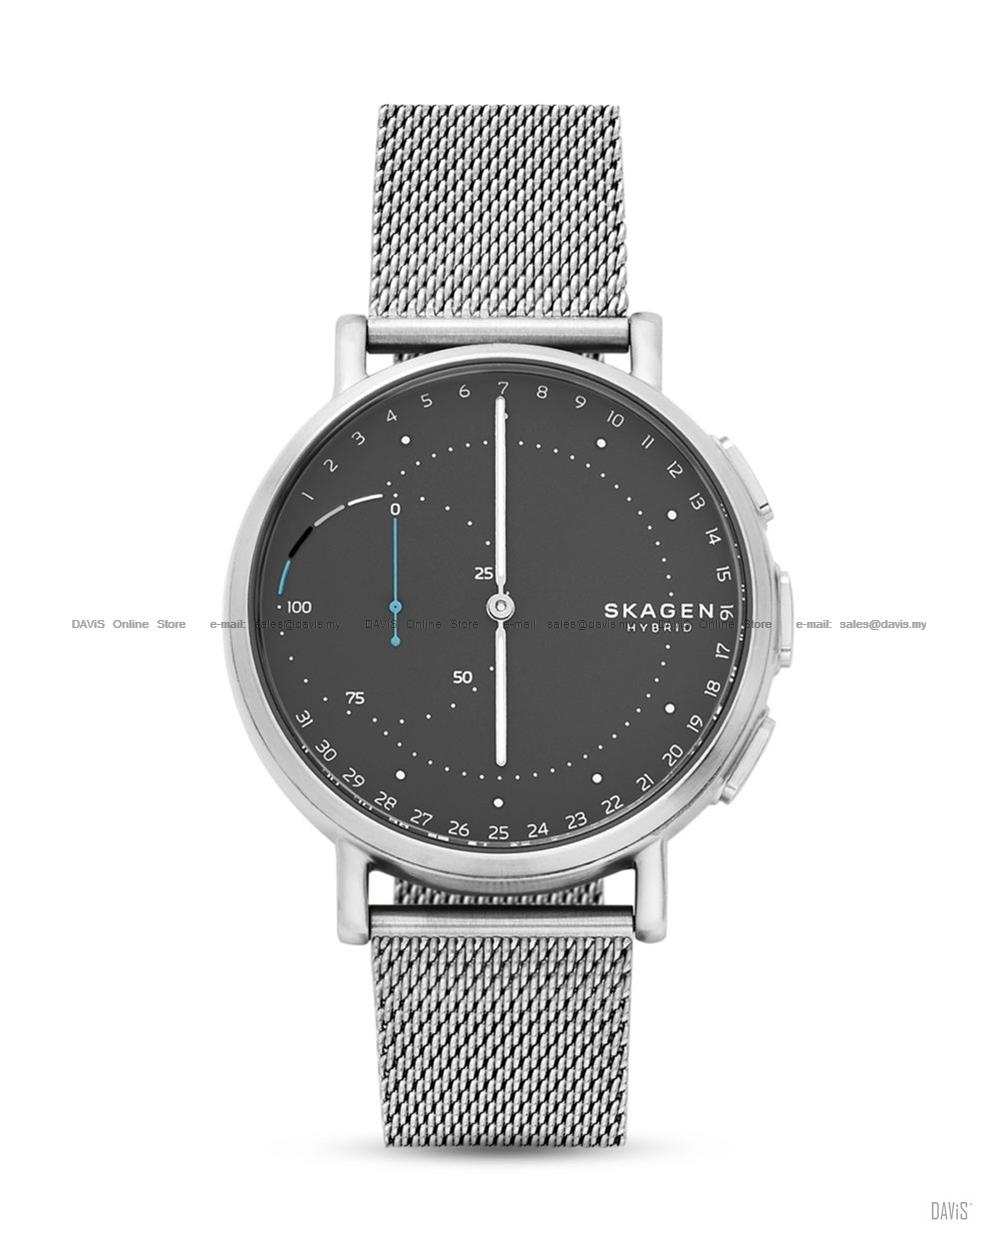 SKAGEN SKT1113 Signatur Connected Hybrid Smartwatch Mesh Bracelet Grey